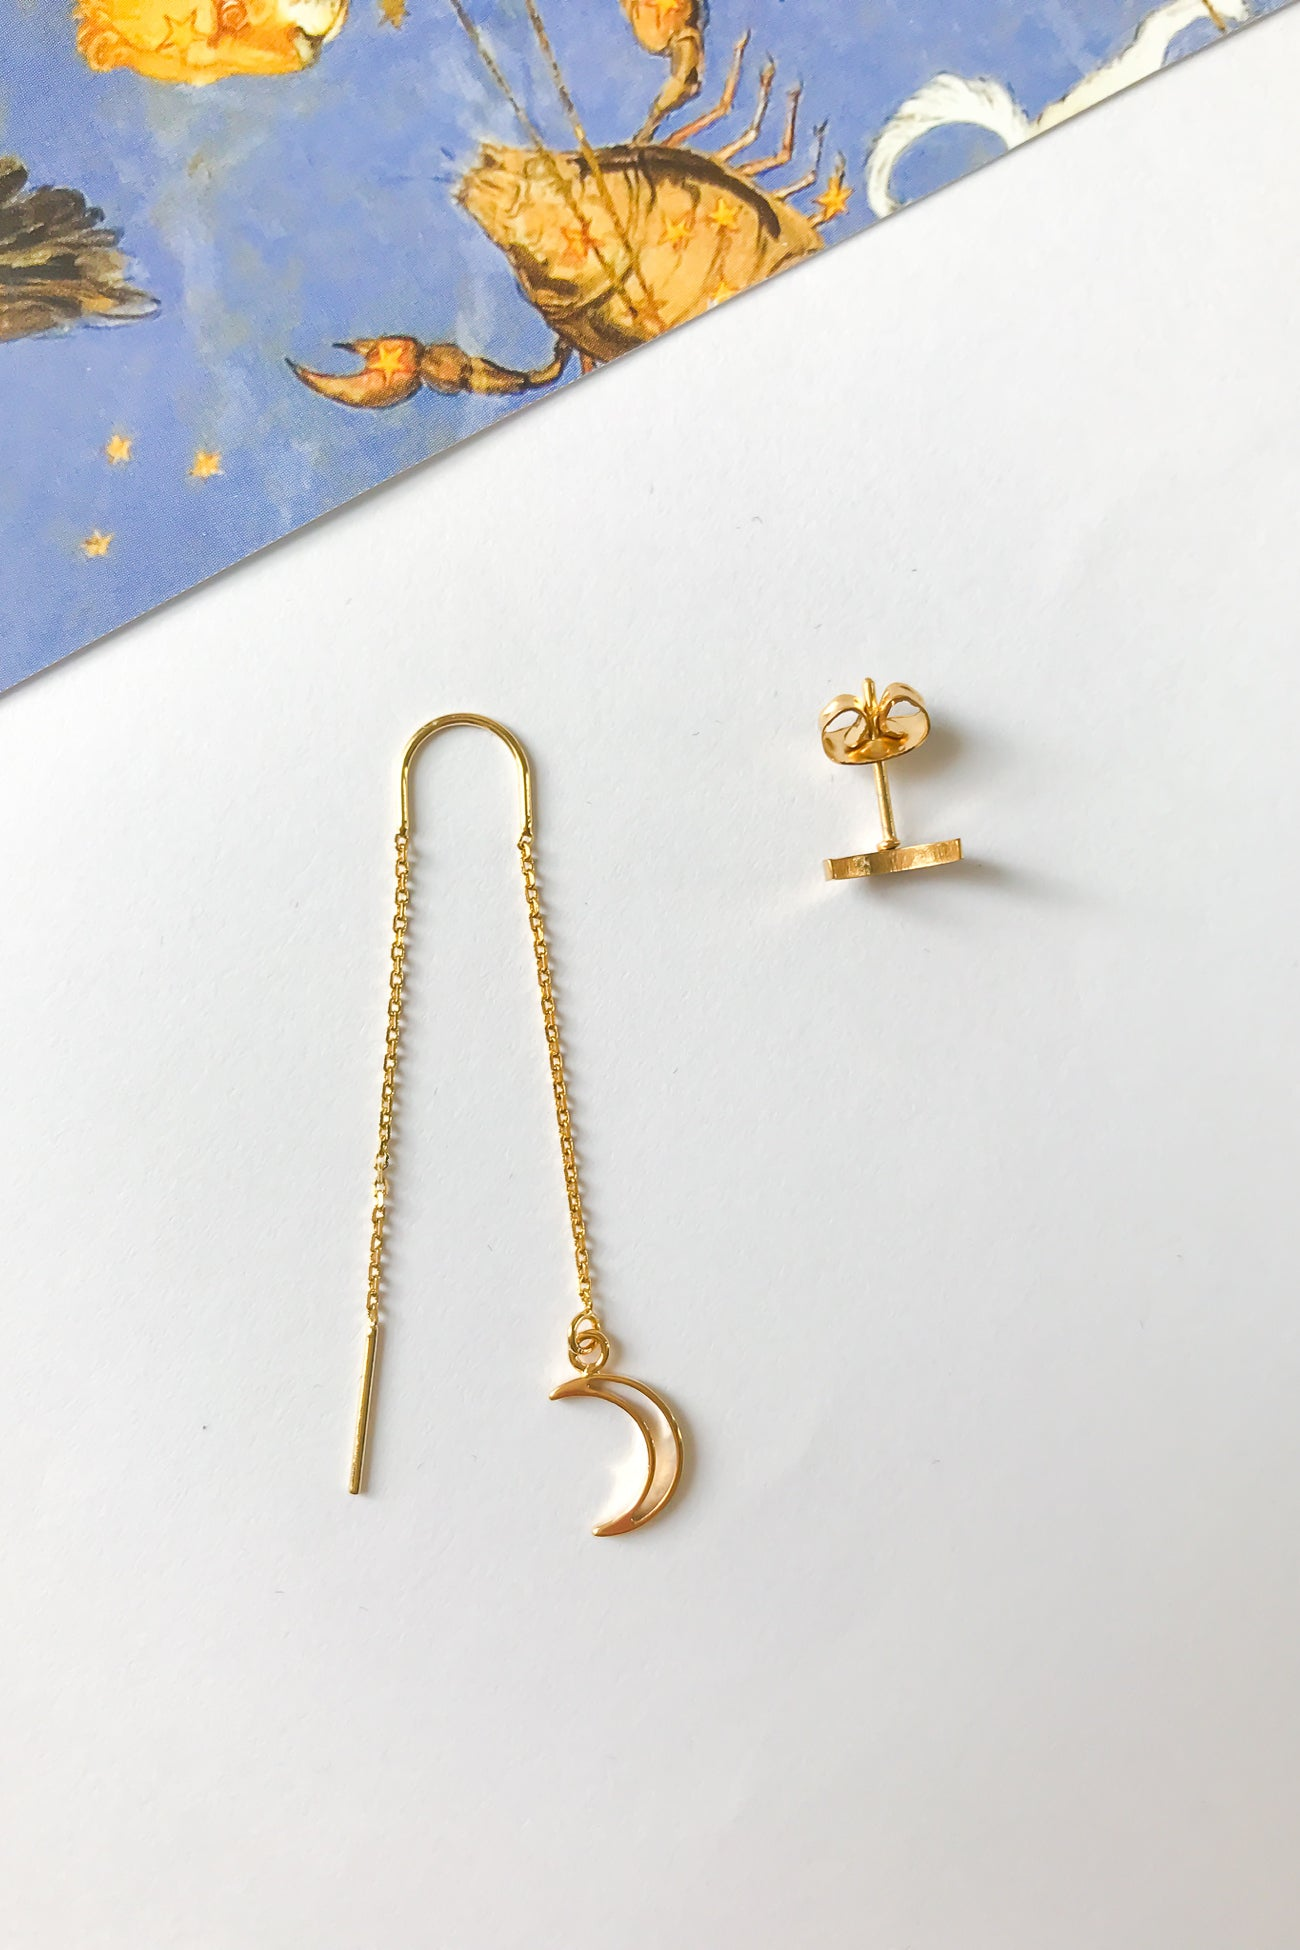 Moon threader earrings